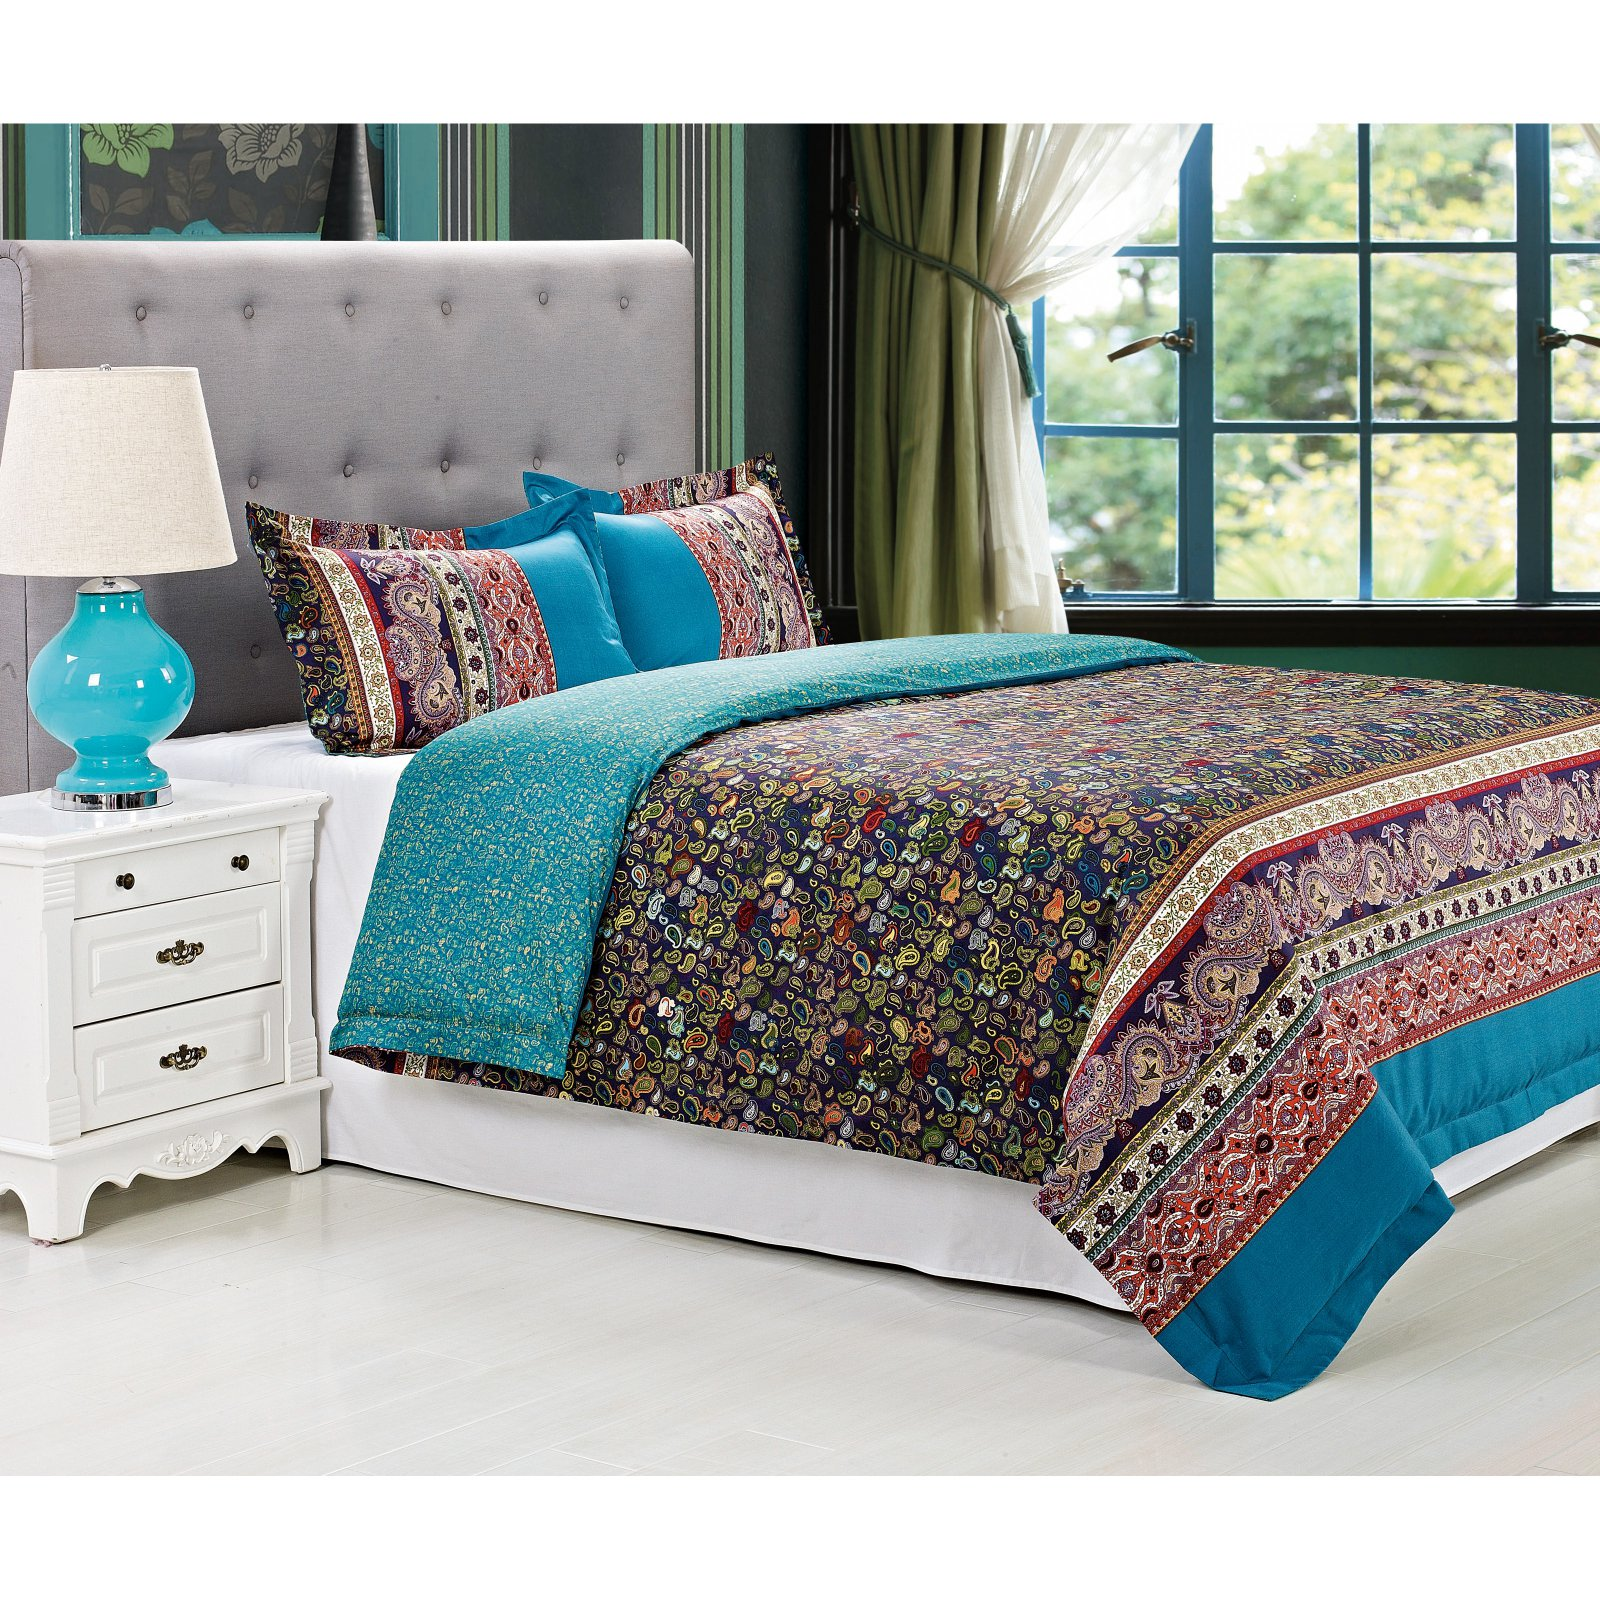 Rosewood 3 Piece Duvet Cover Set by Superior